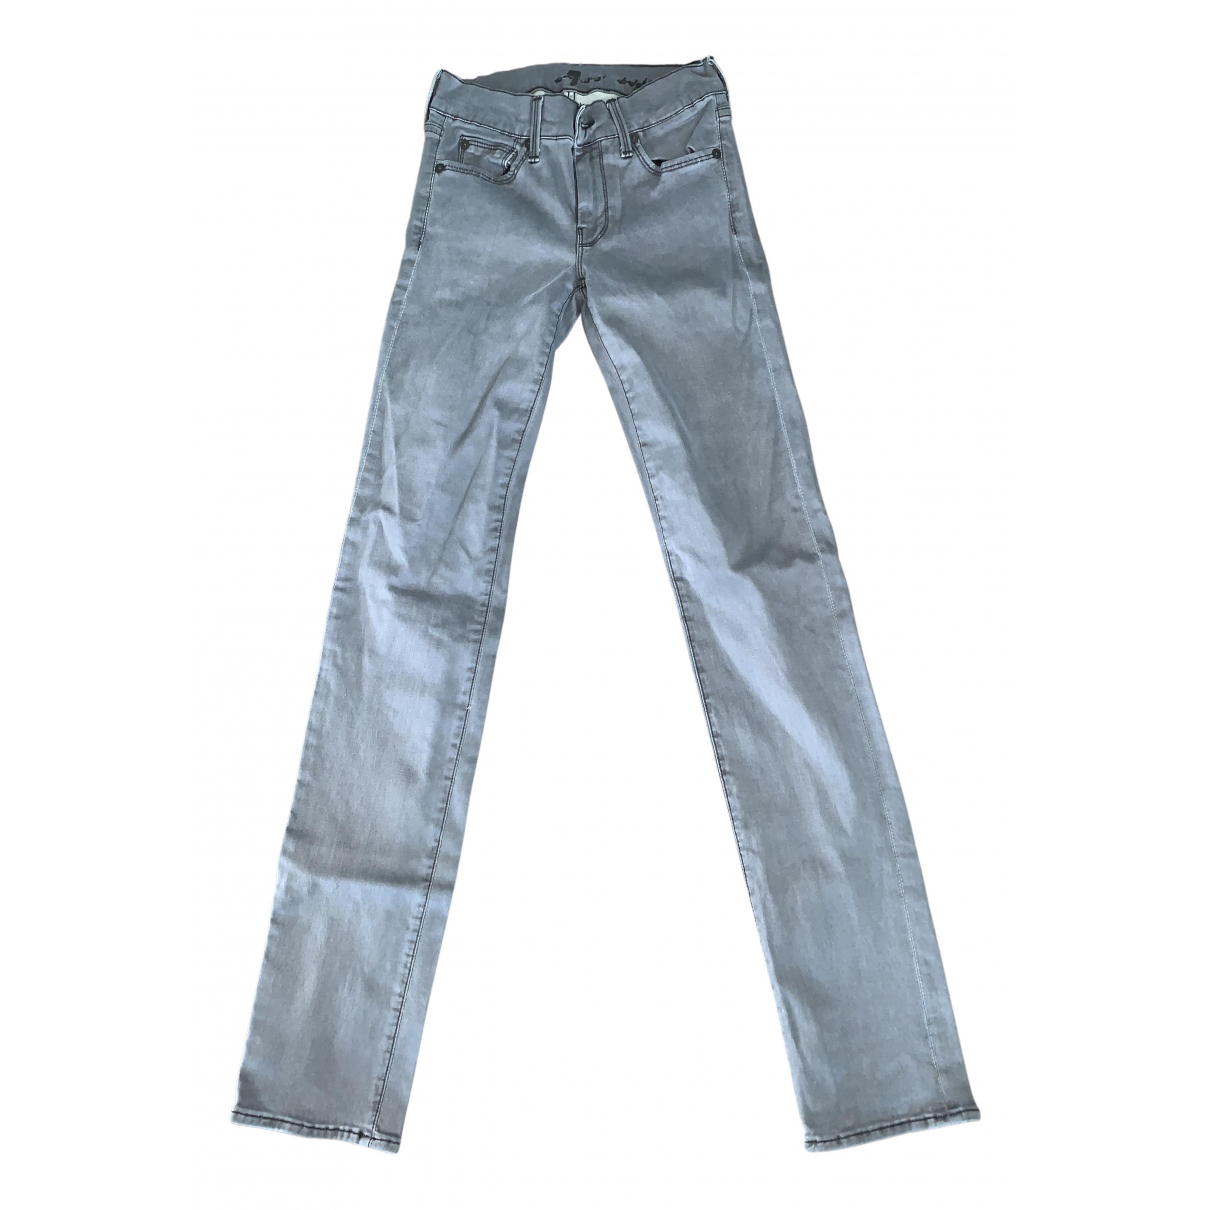 7 For All Mankind N Grey Denim - Jeans Jeans for Women 26 US